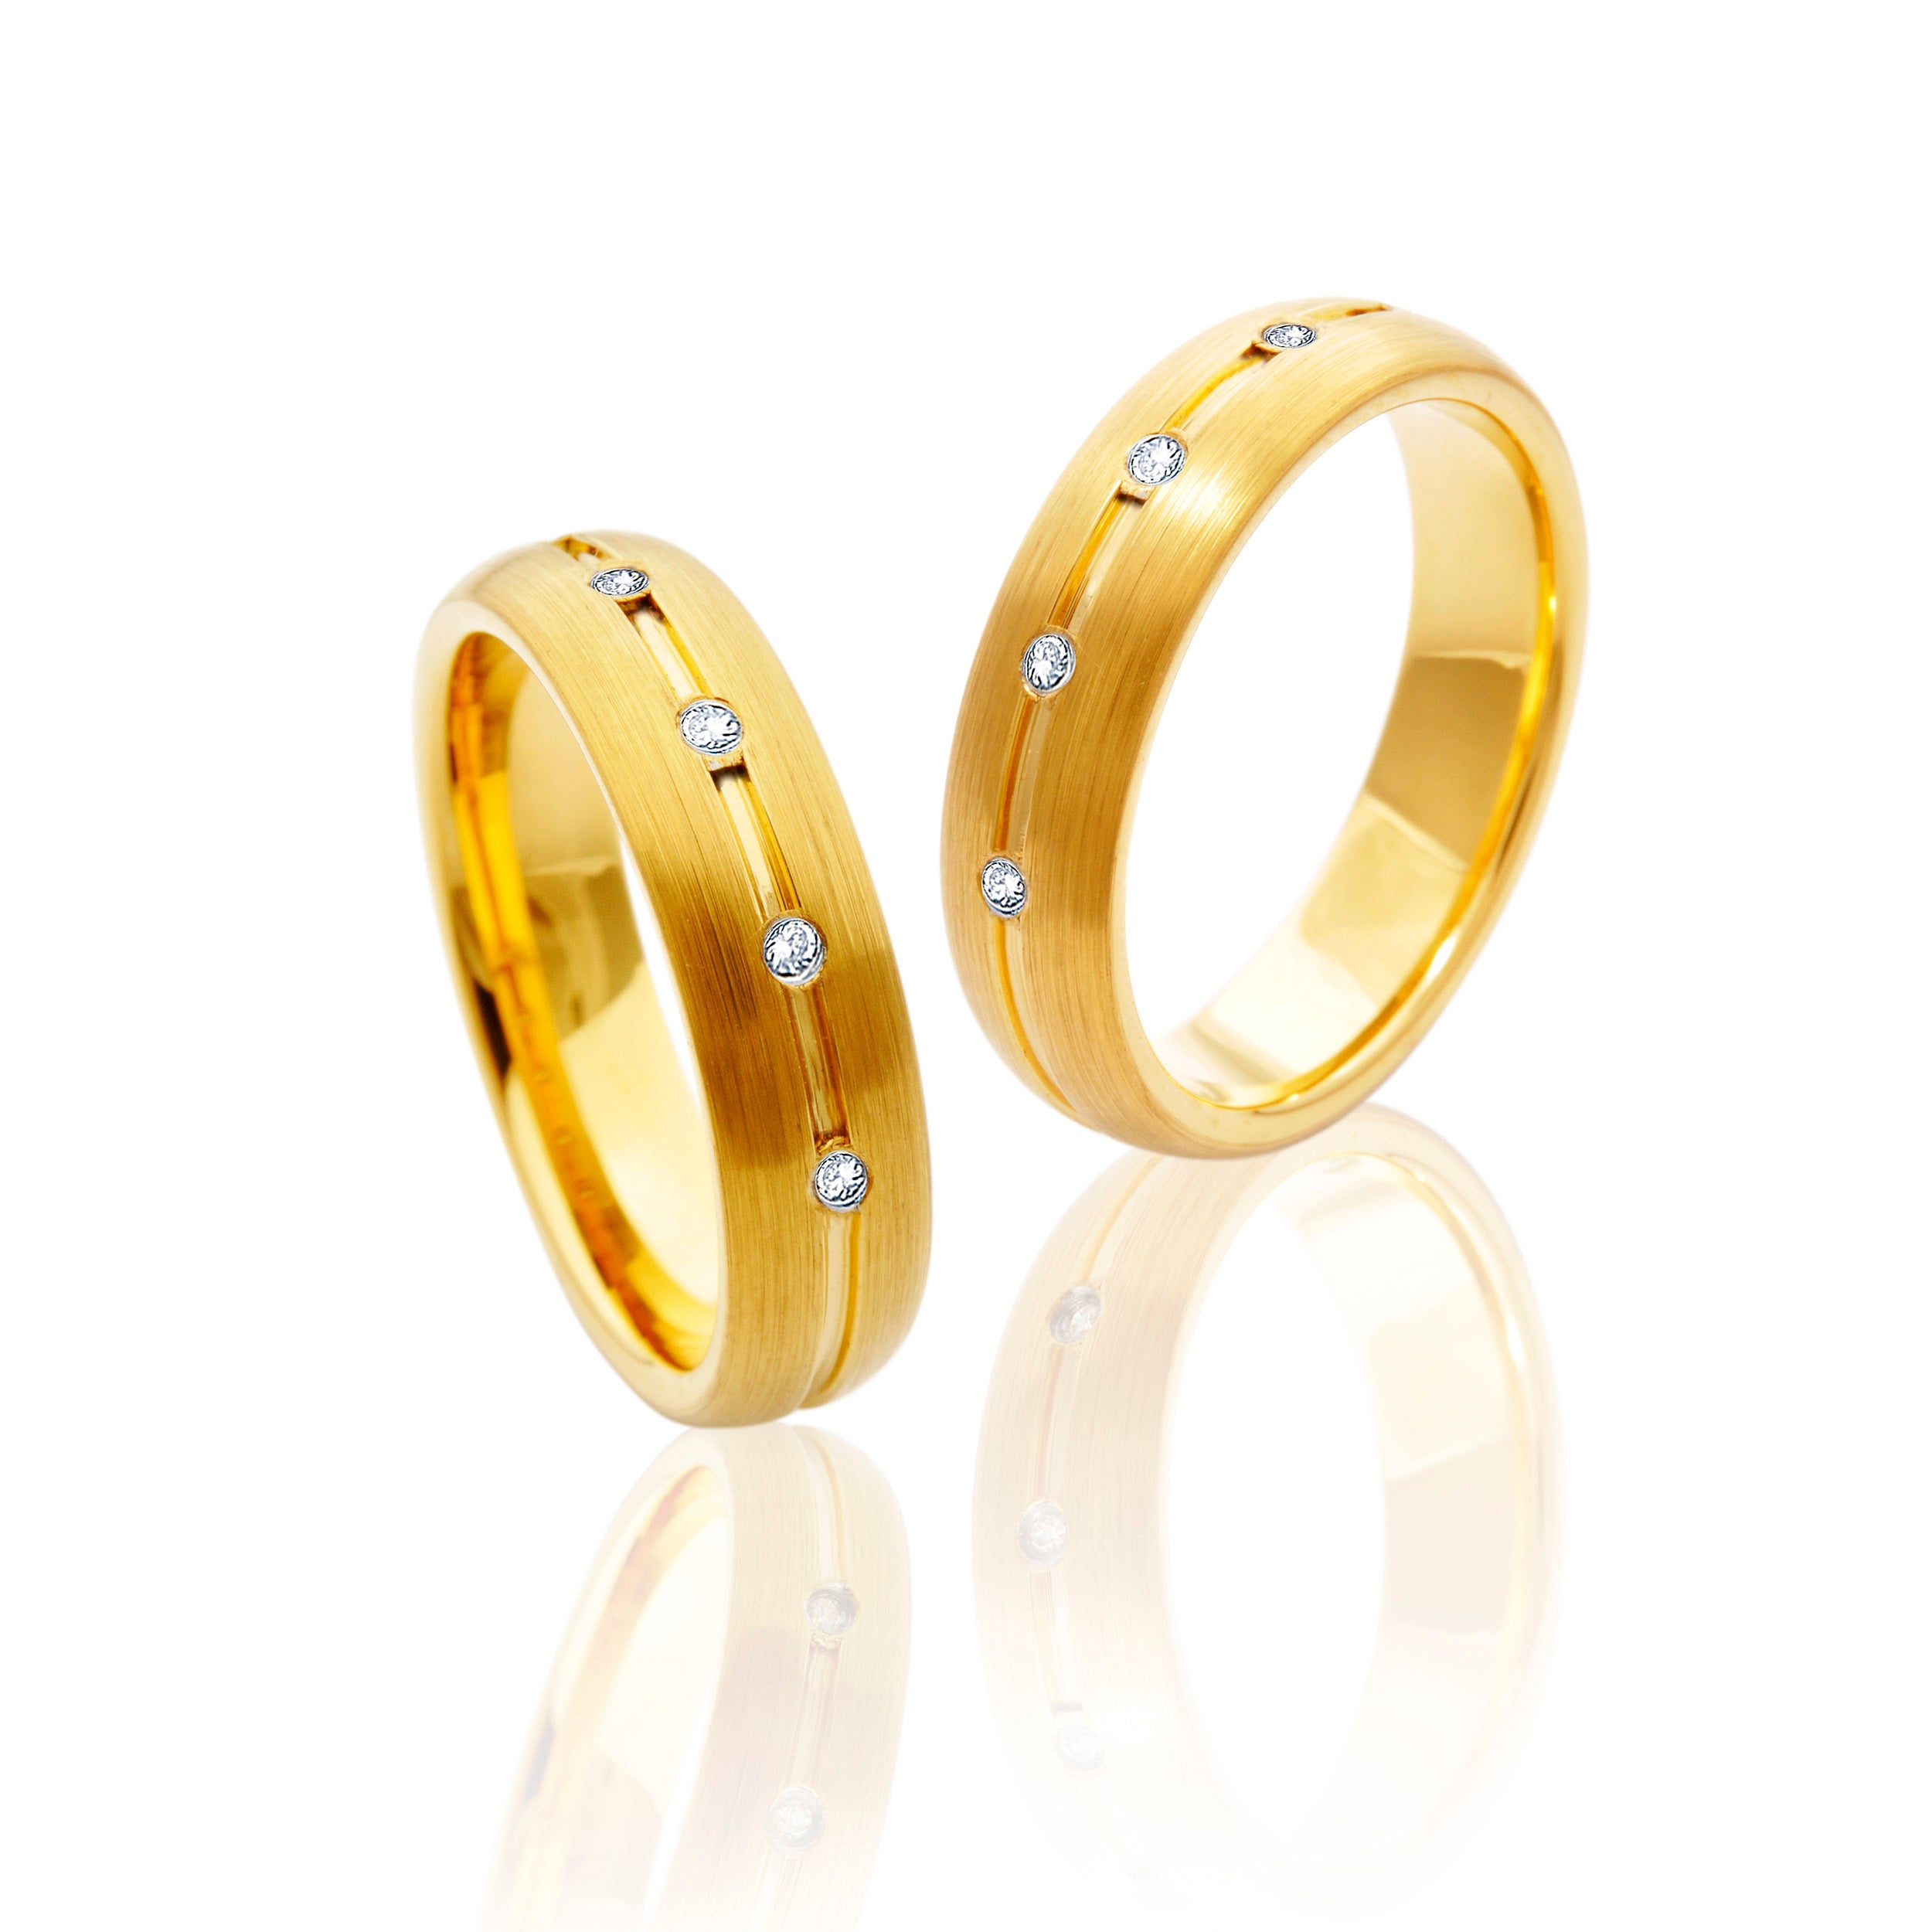 All Gold Tungsten Ring with Diamonds in Five Rows in Pairs